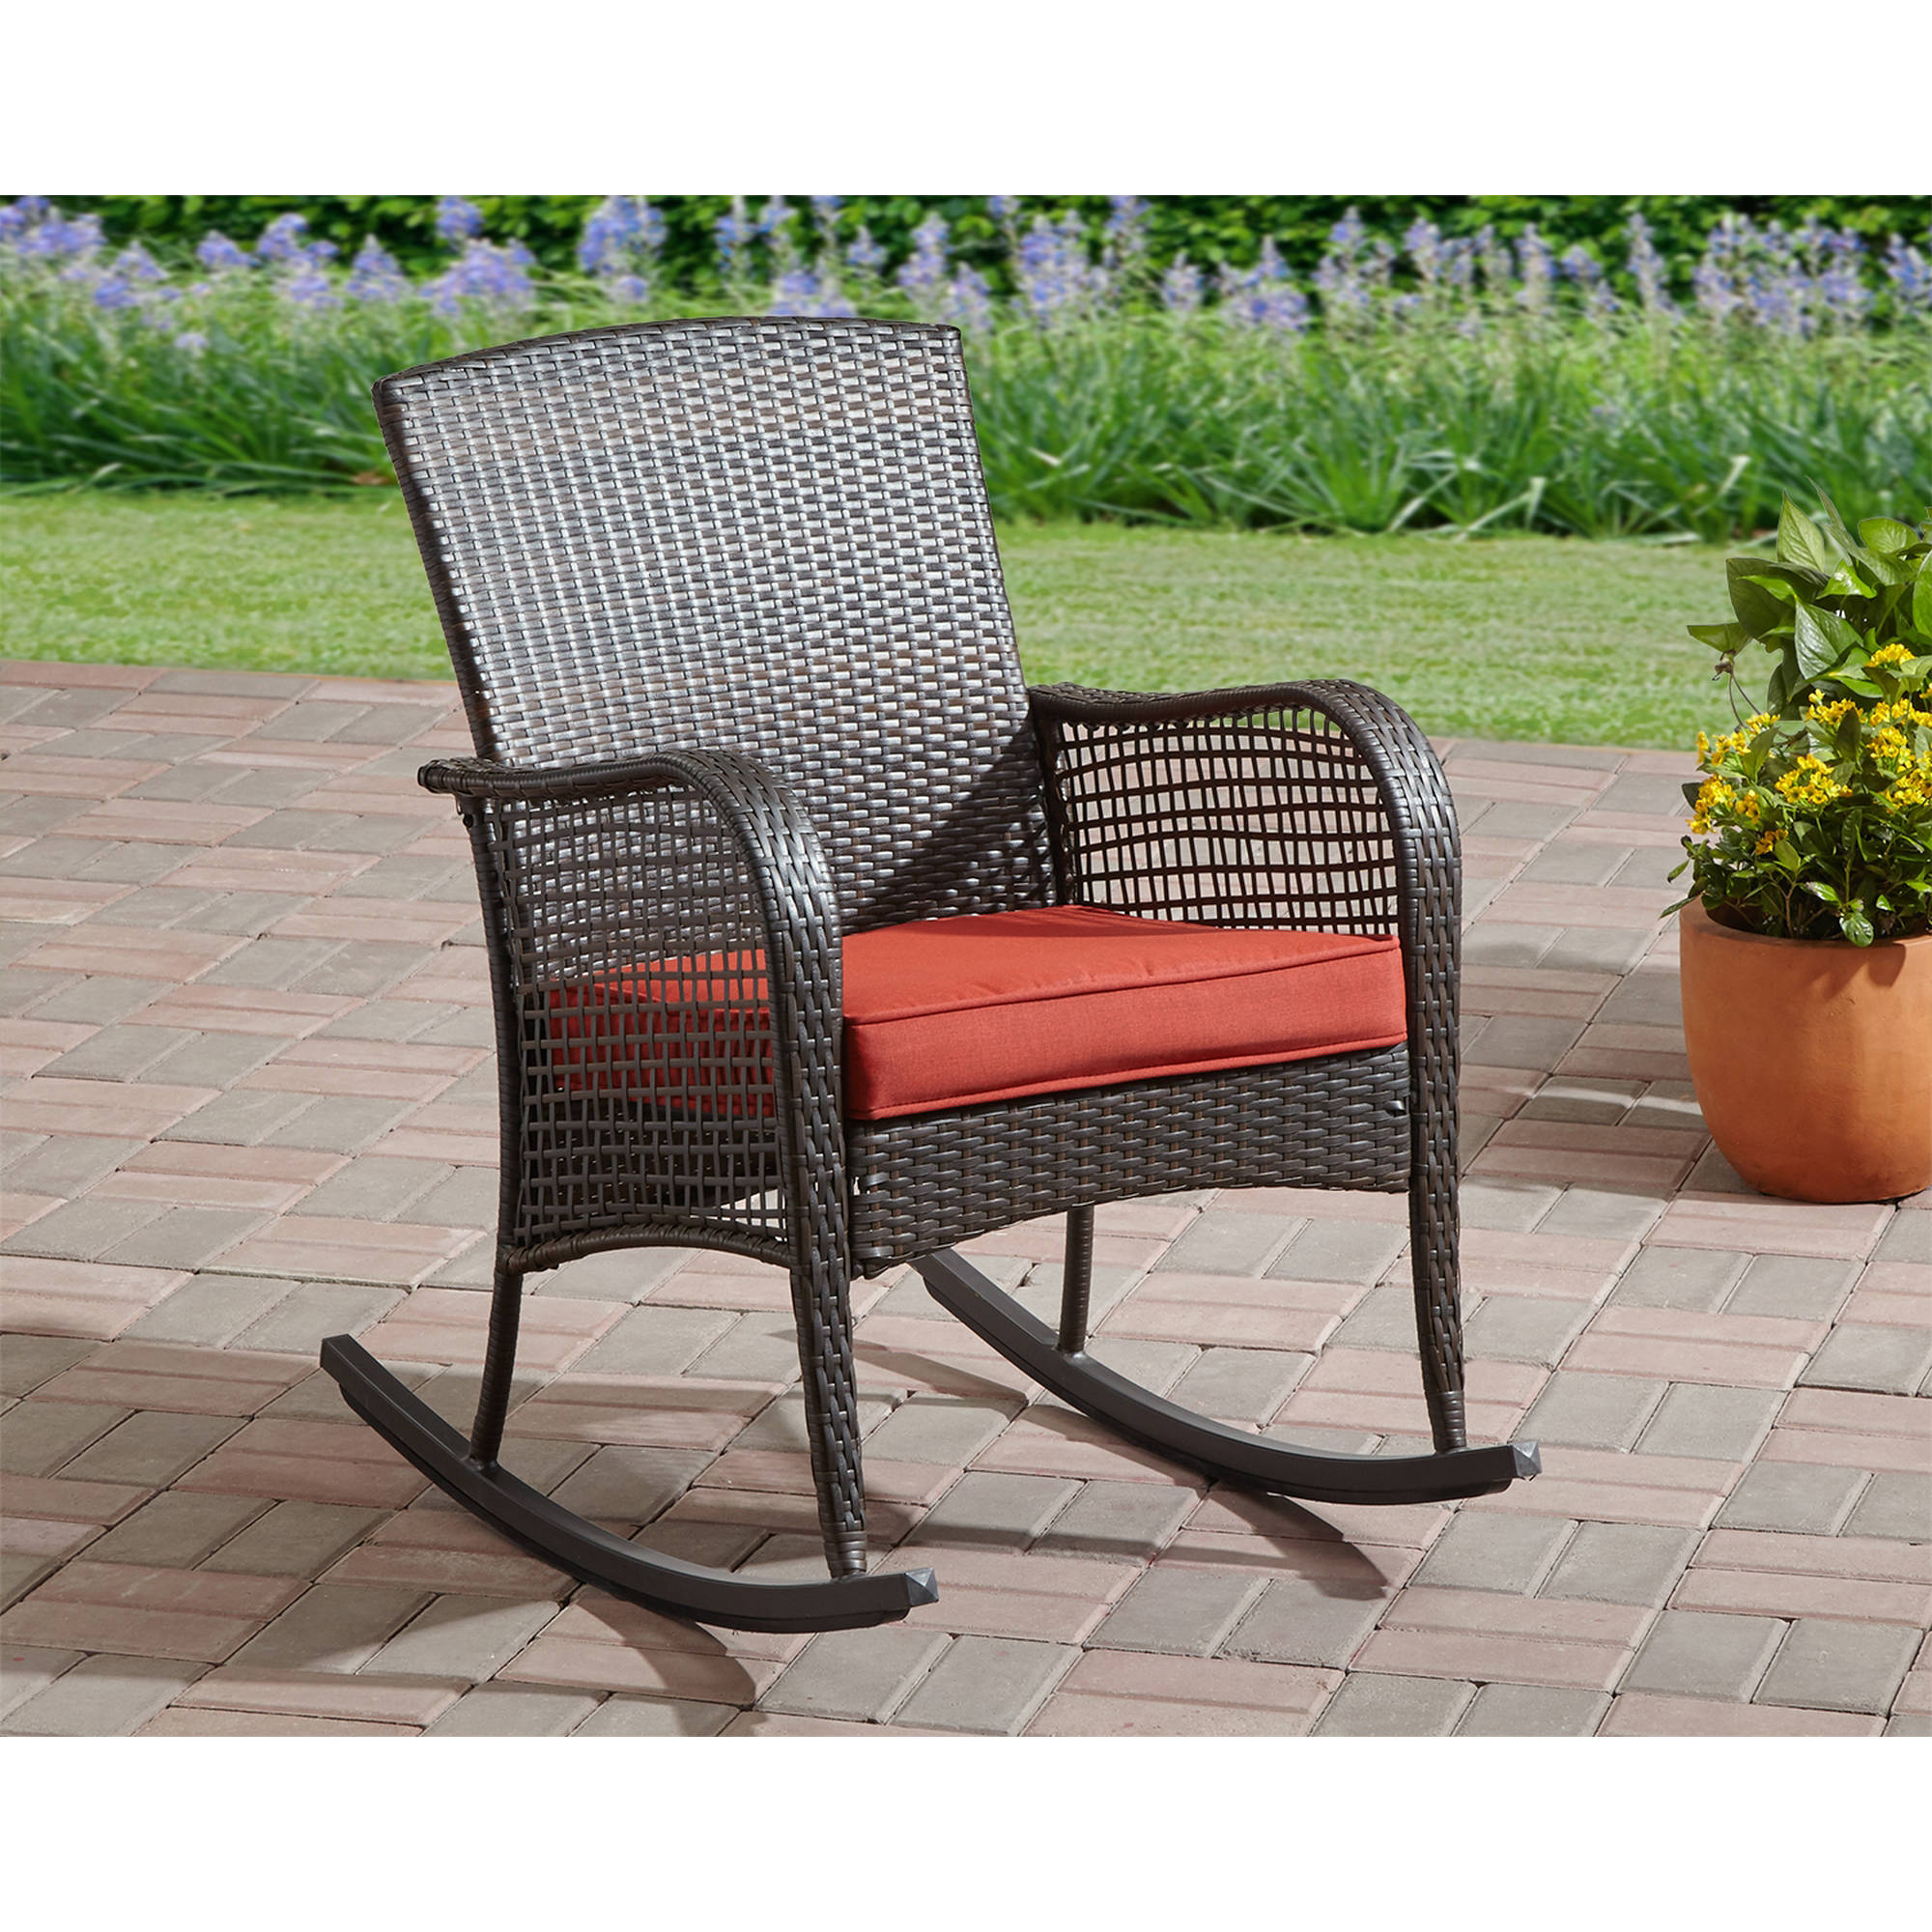 Merveilleux Product Image Mainstays Cambridge Park Wicker Outdoor Rocking Chair